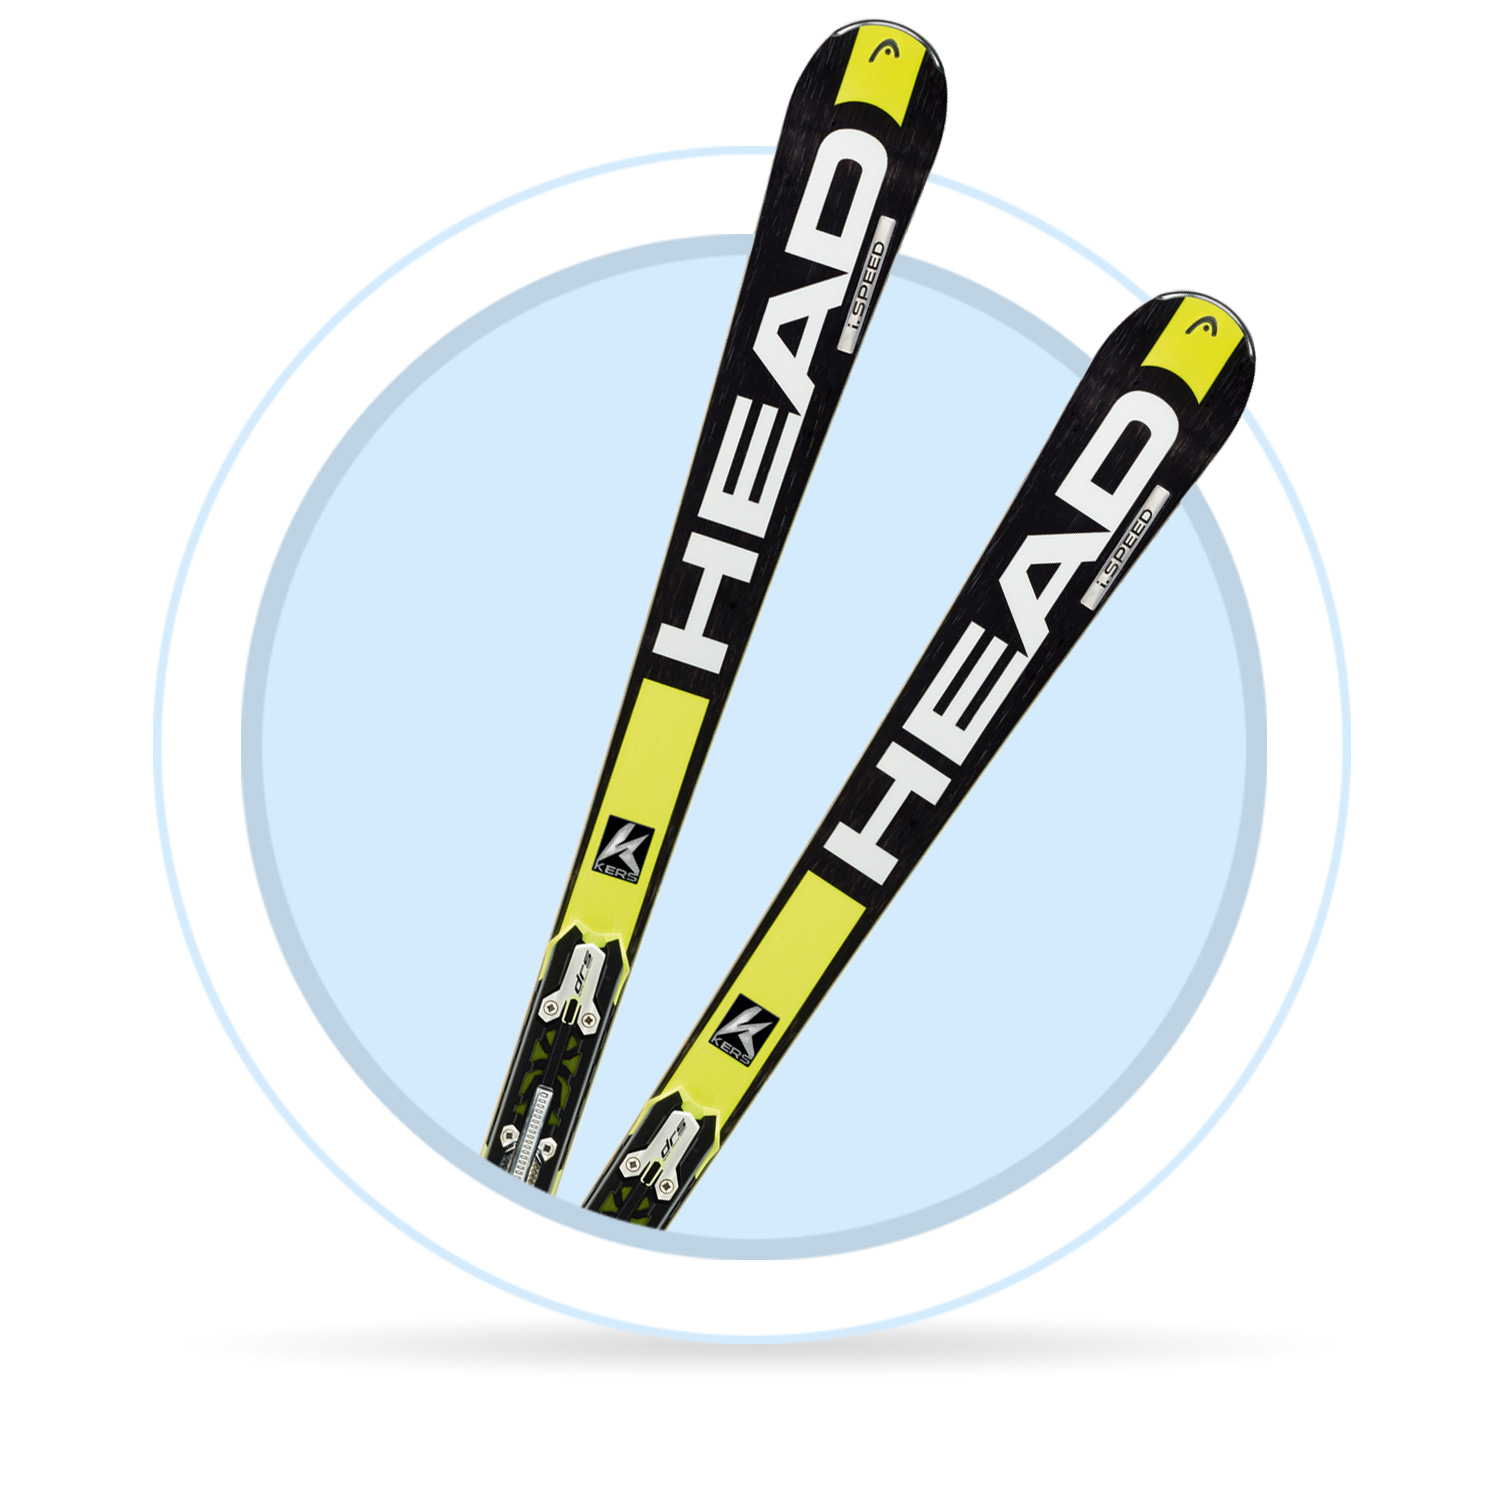 How to choose downhill skiing equipment